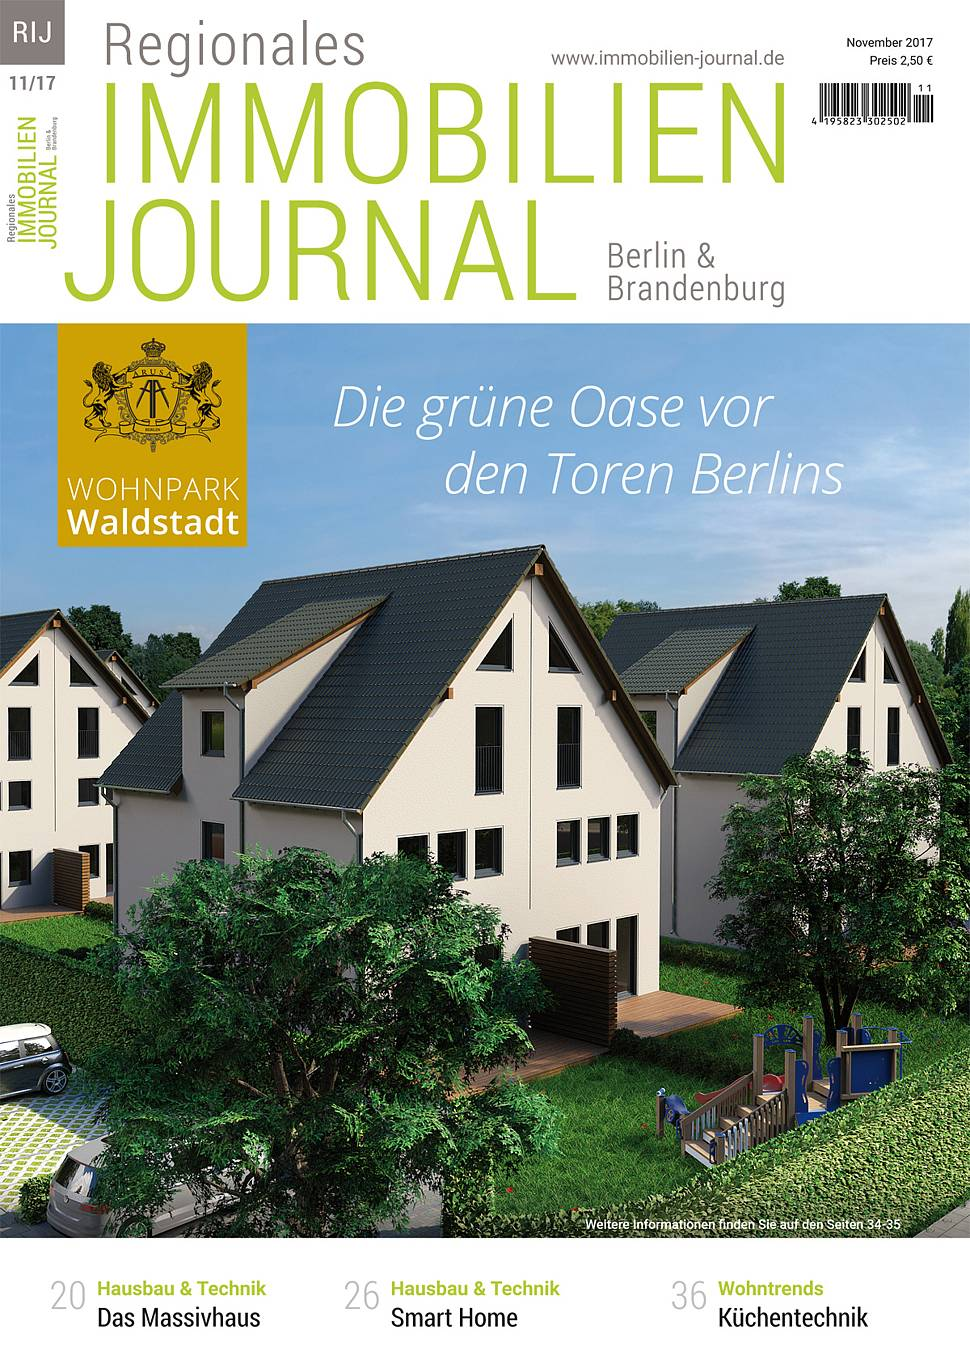 Regionales Immobilien Journal Berlin & Brandenburg November 2017